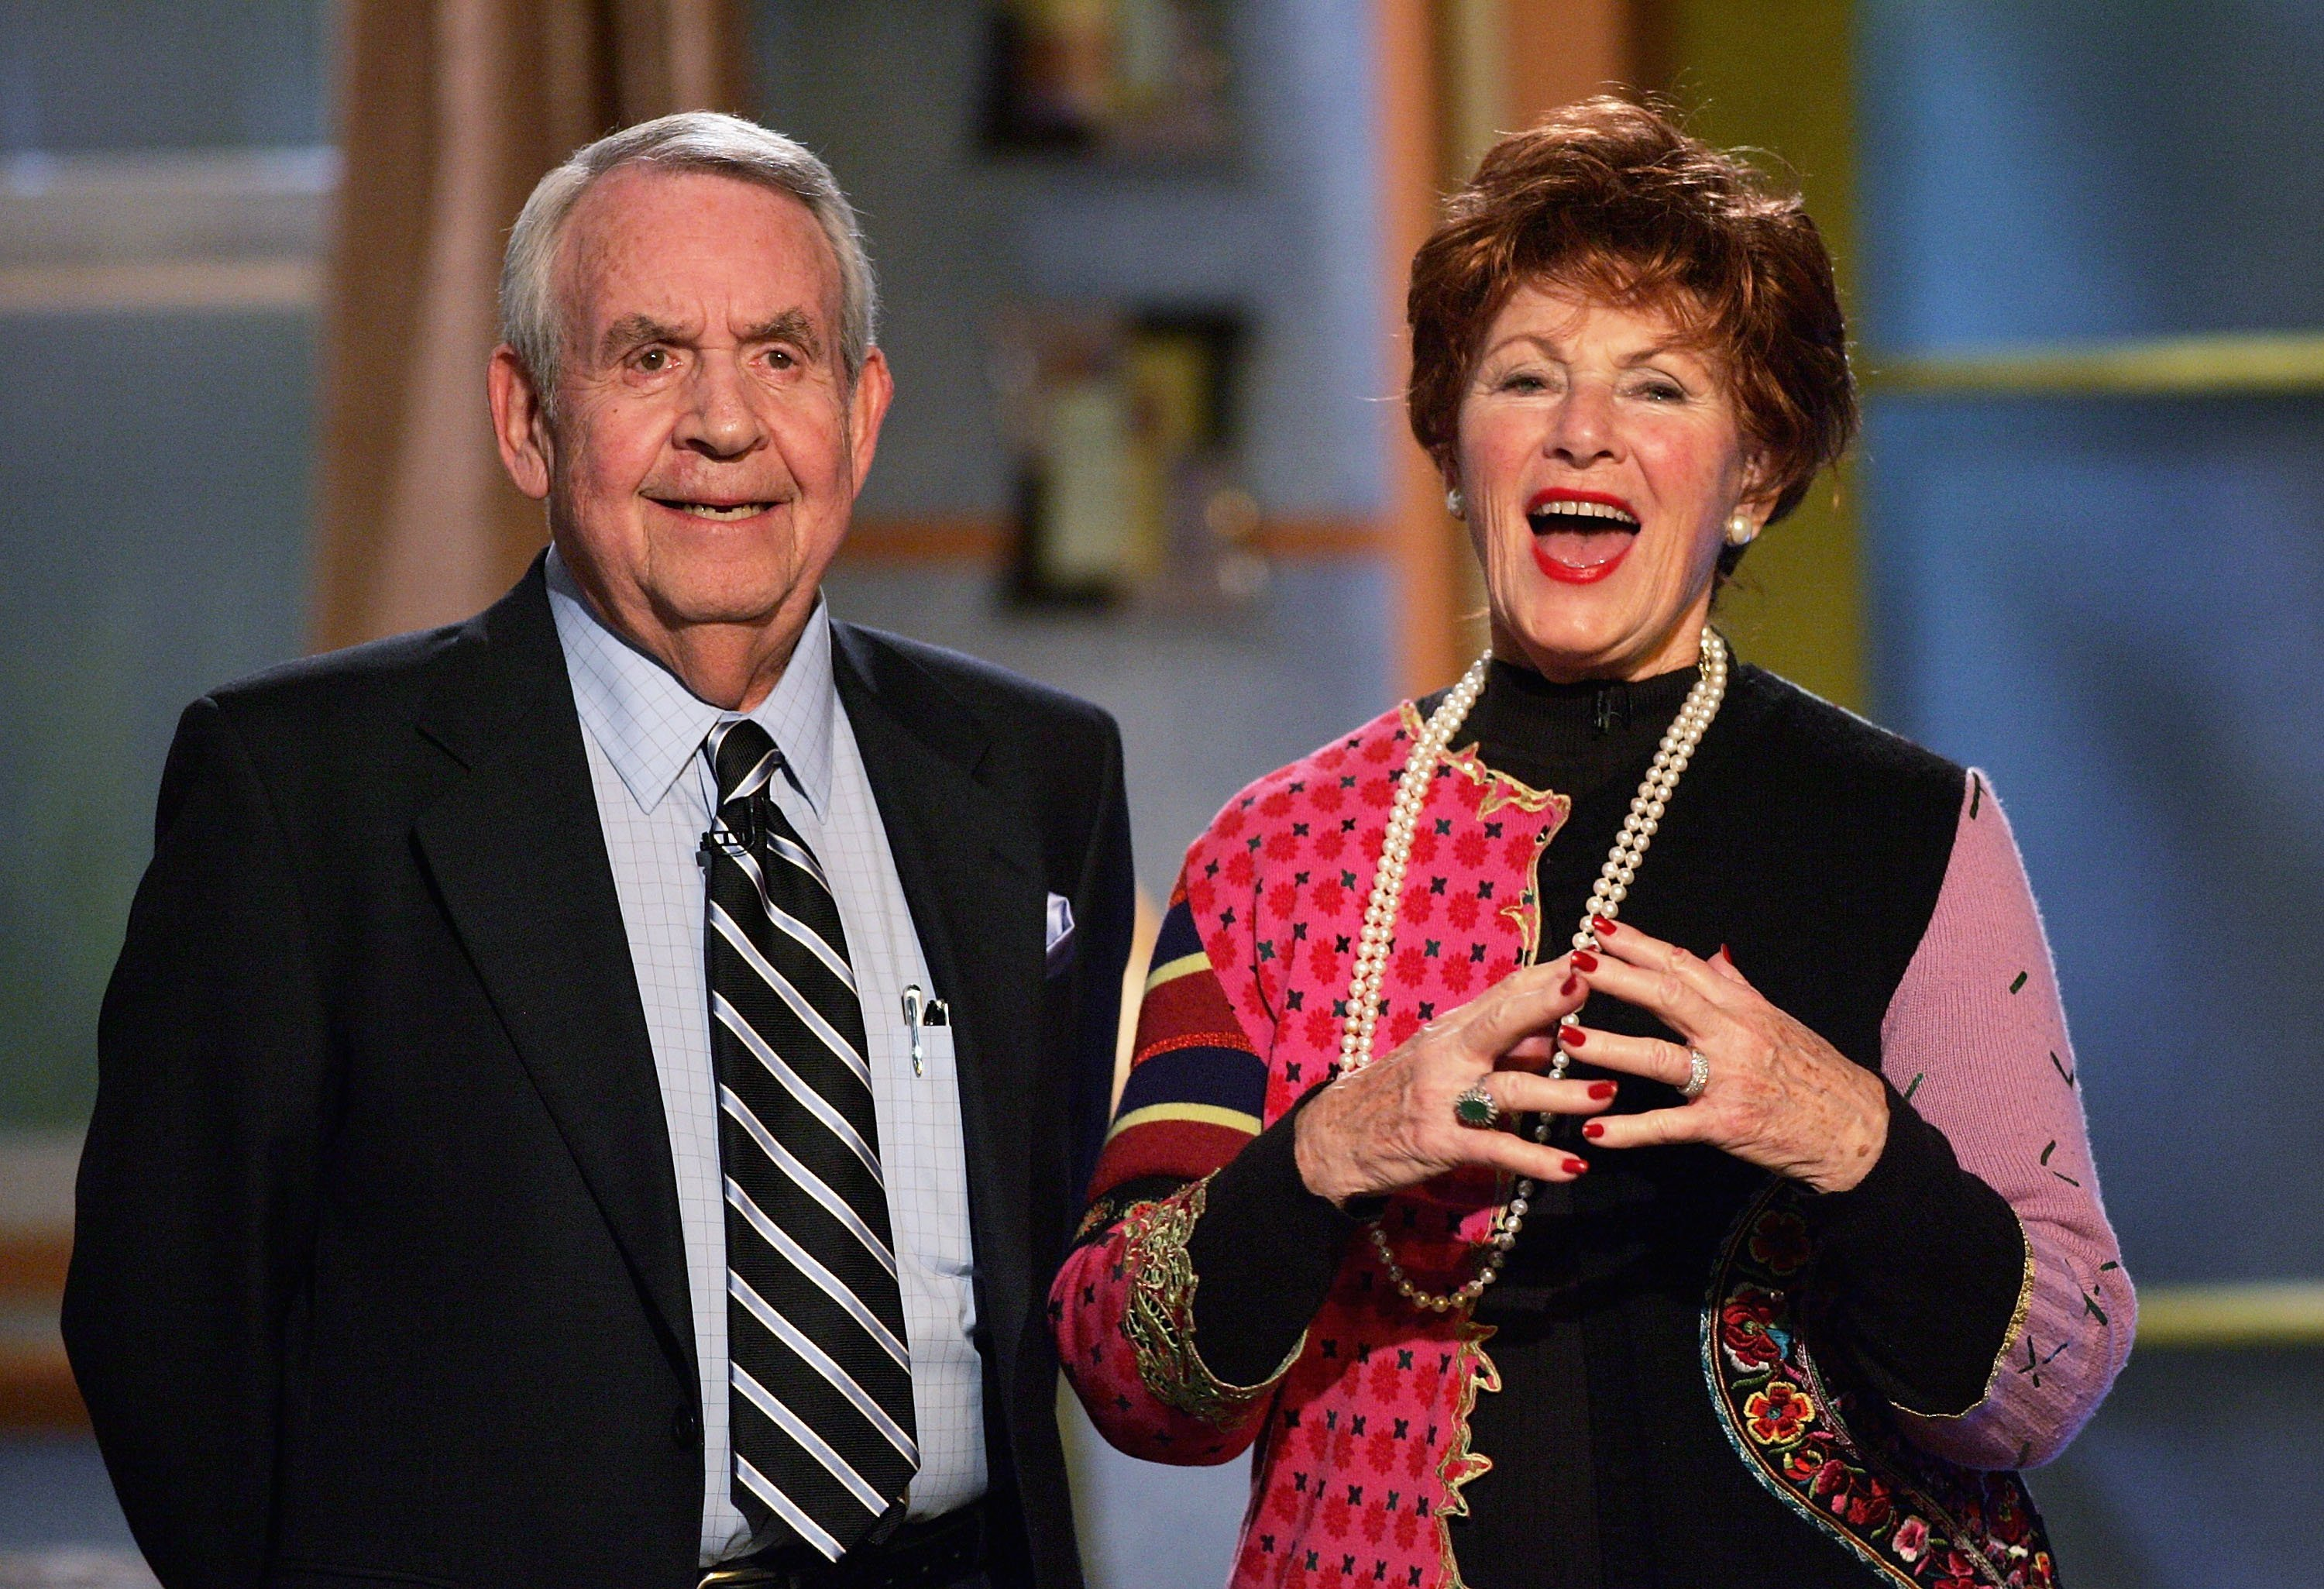 Tom Bosley and Marion Ross at the 6th Annual Family Television Awards on December 1, 2004 | Photo: GettyImages